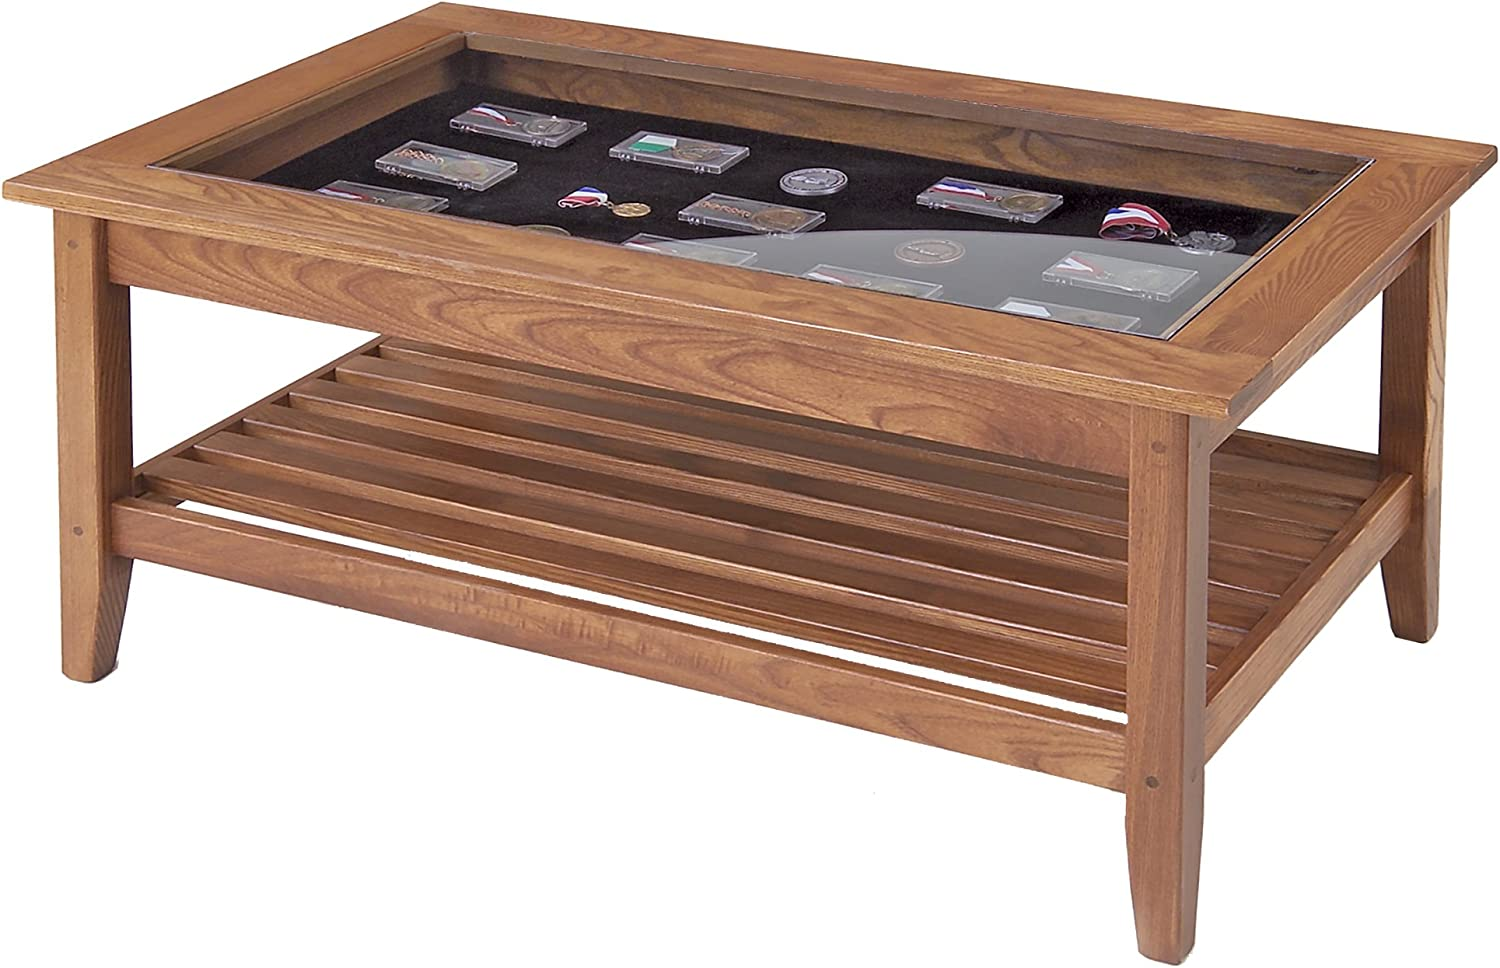 Manchester Wood American Made Furniture Glass Top Display Coffee Table Amazon Co Uk Kitchen Home